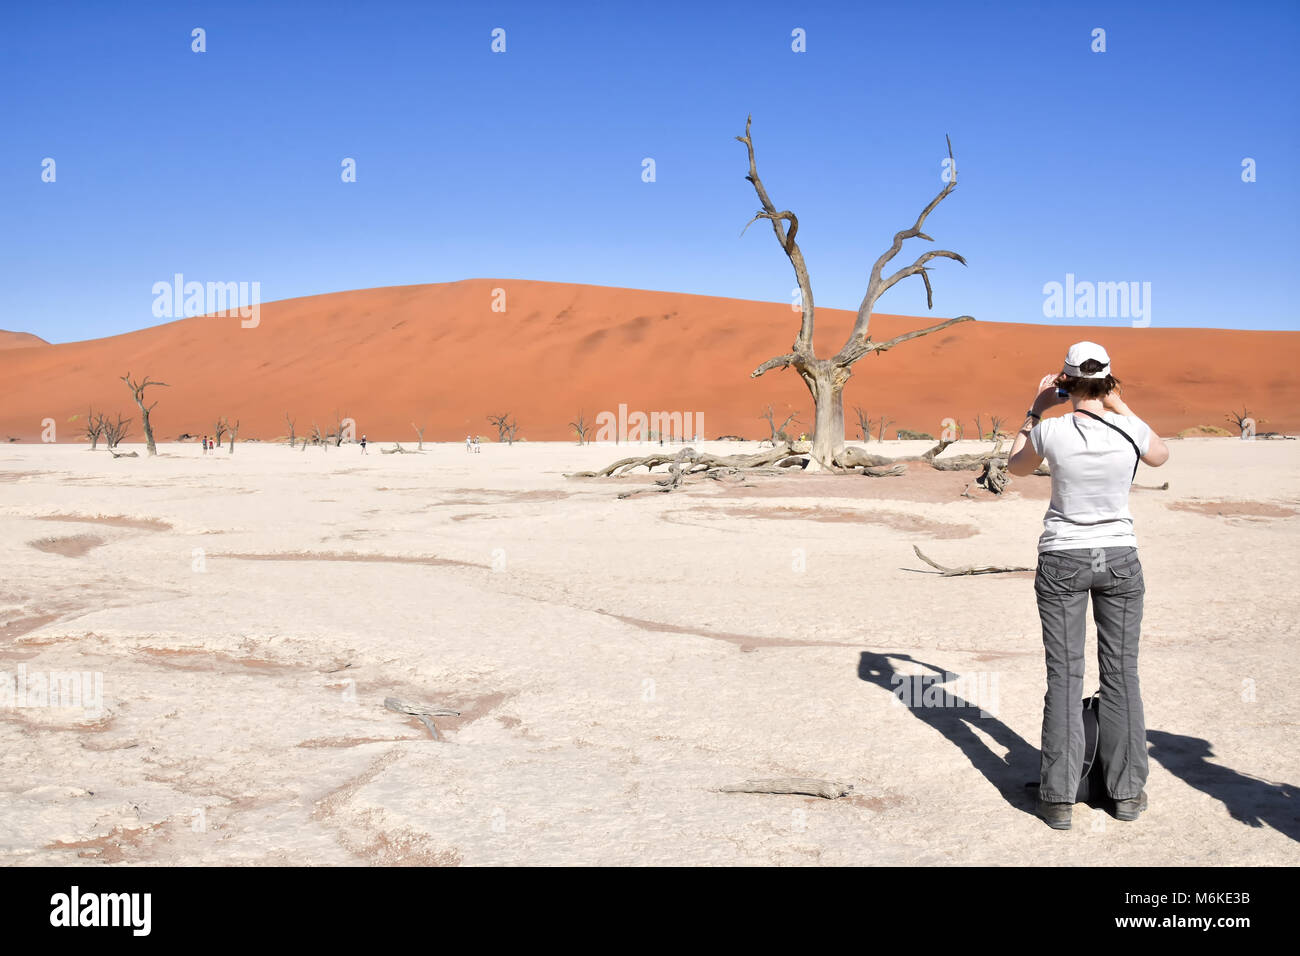 Female tourist taking a photo standing near trees in the dead or dry lake near the famous sand dunes in the Namib - Stock Image